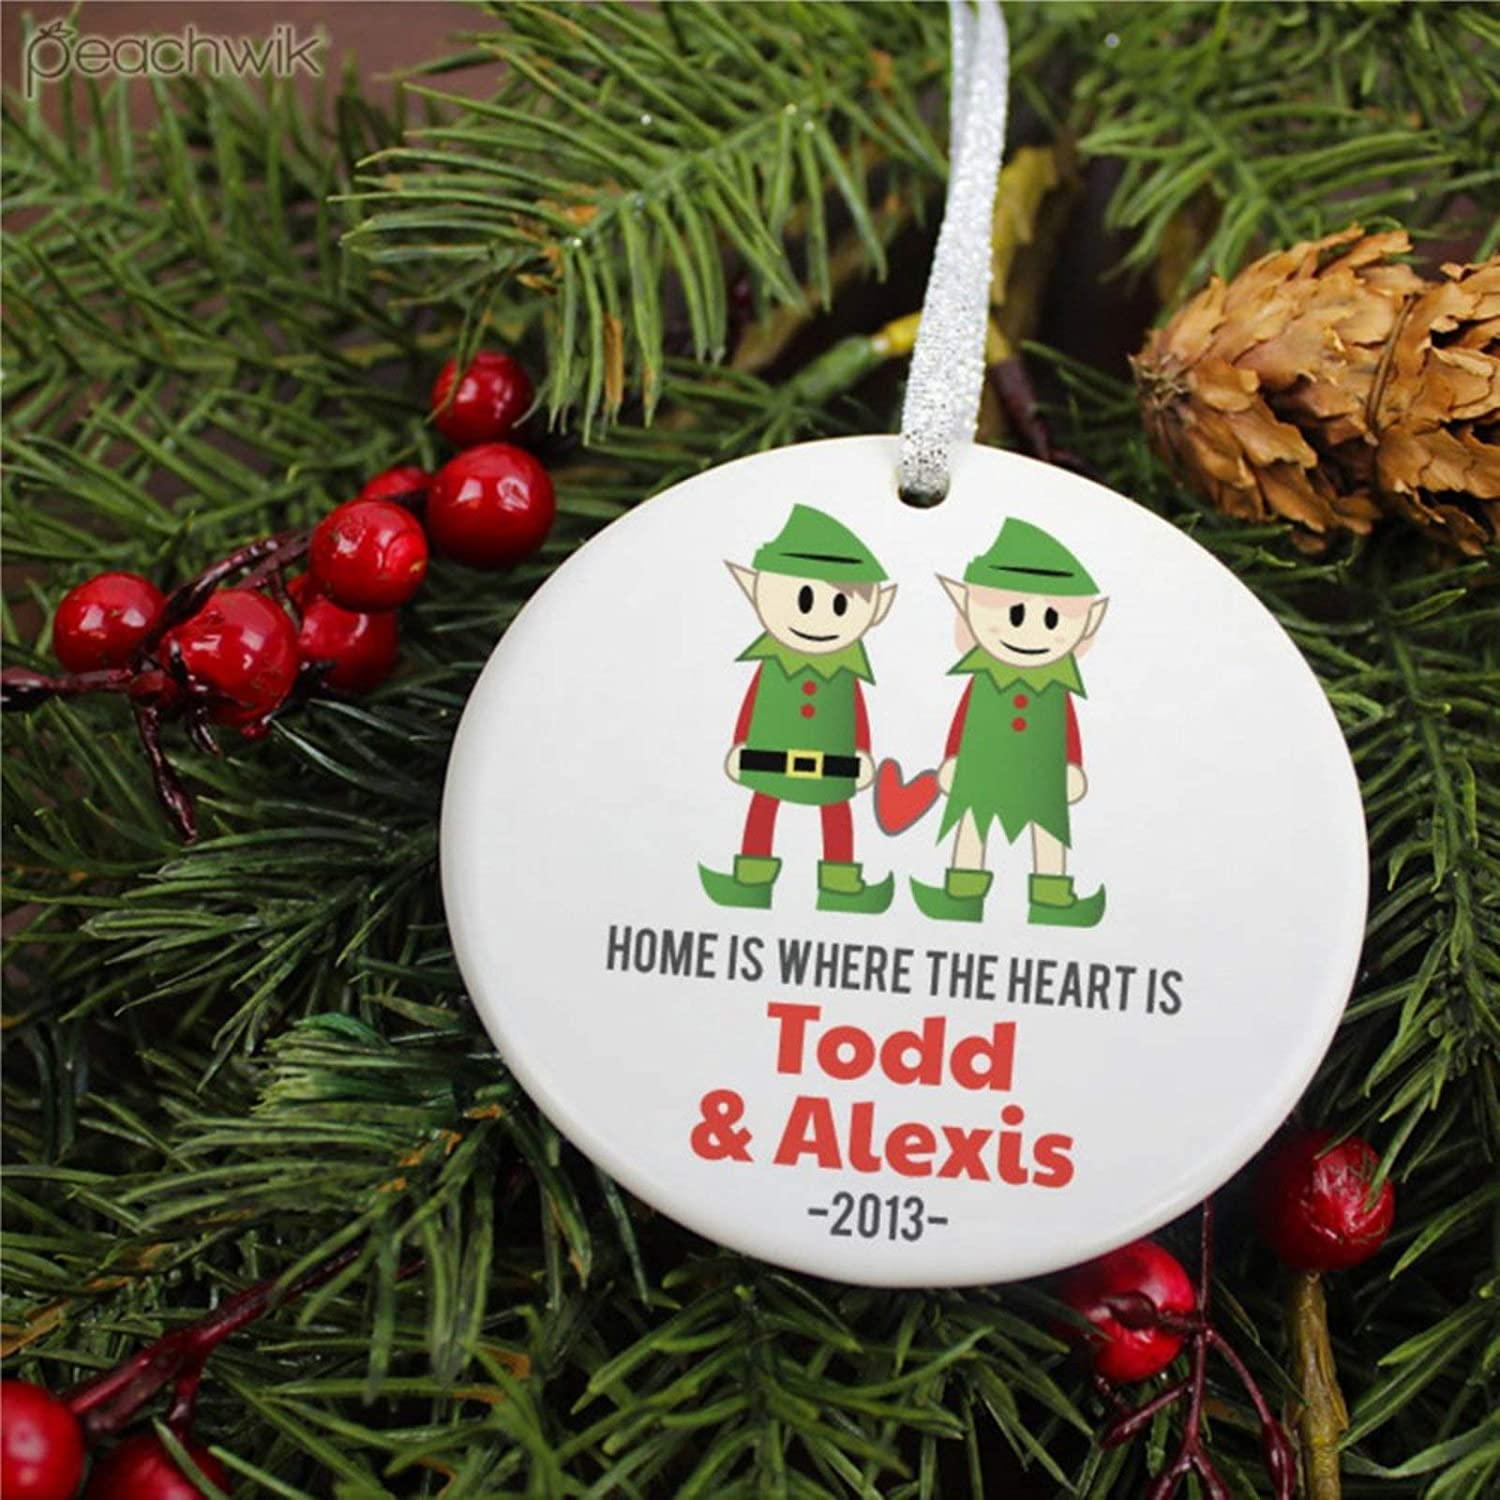 DONL9BAUER Home is Where The Heart Custom Christmas Ornament,elf New Married Holiday Ceramic Tree Hanging Keepsake Ornament Present for Family,Friends,Couple &Engagement Party.